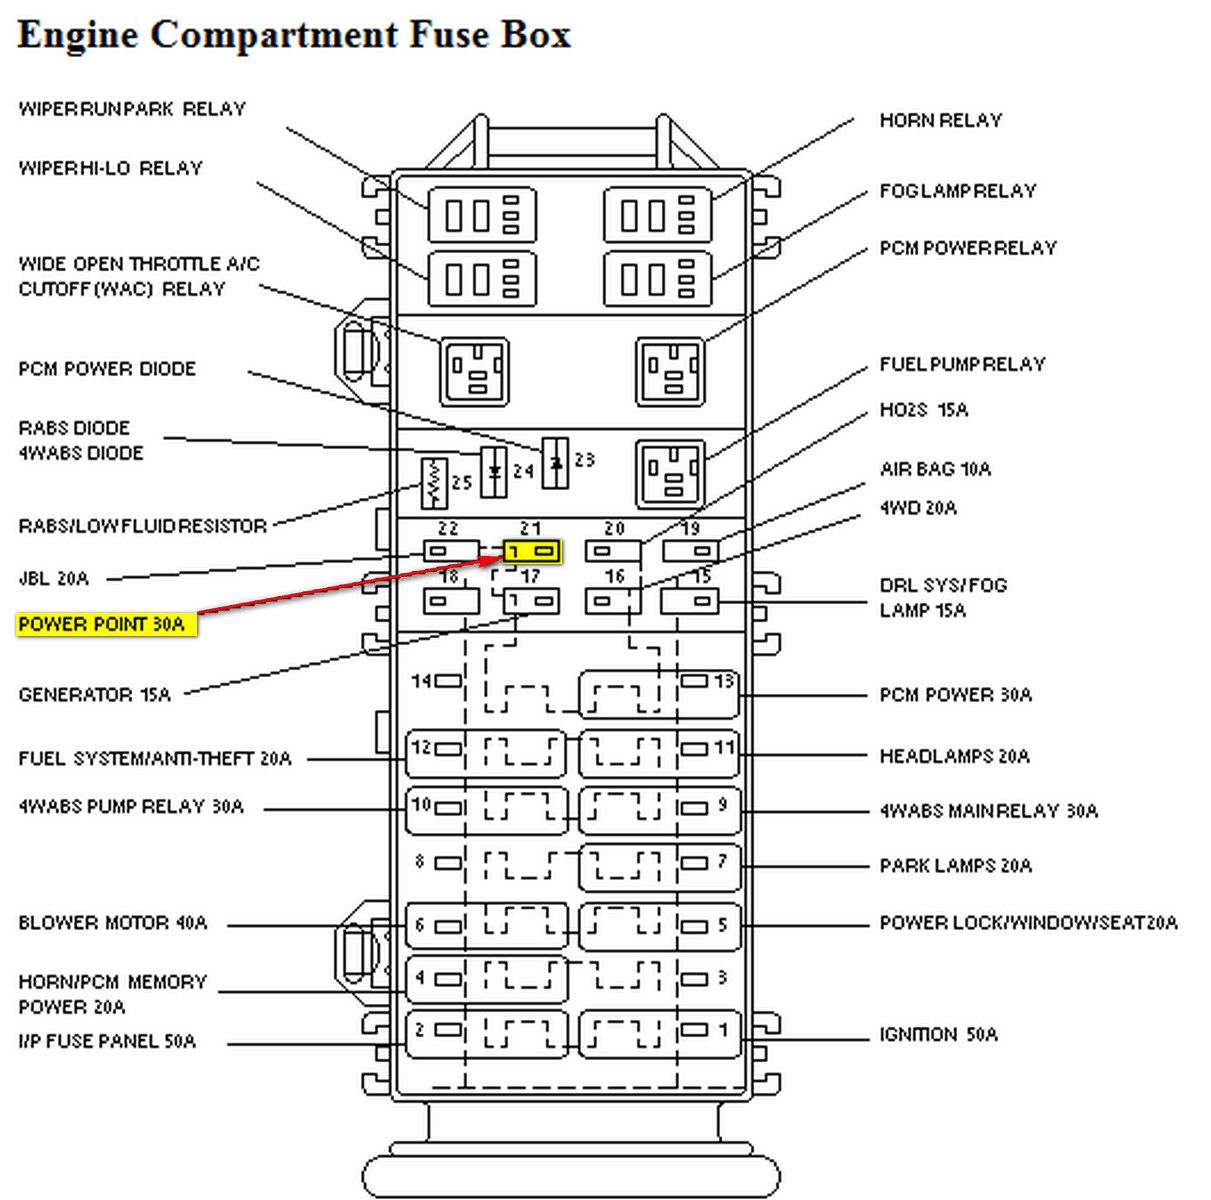 ford ranger 1997 fuse box diagram - wiring diagram sick-pair -  sick-pair.zaafran.it  zaafran.it